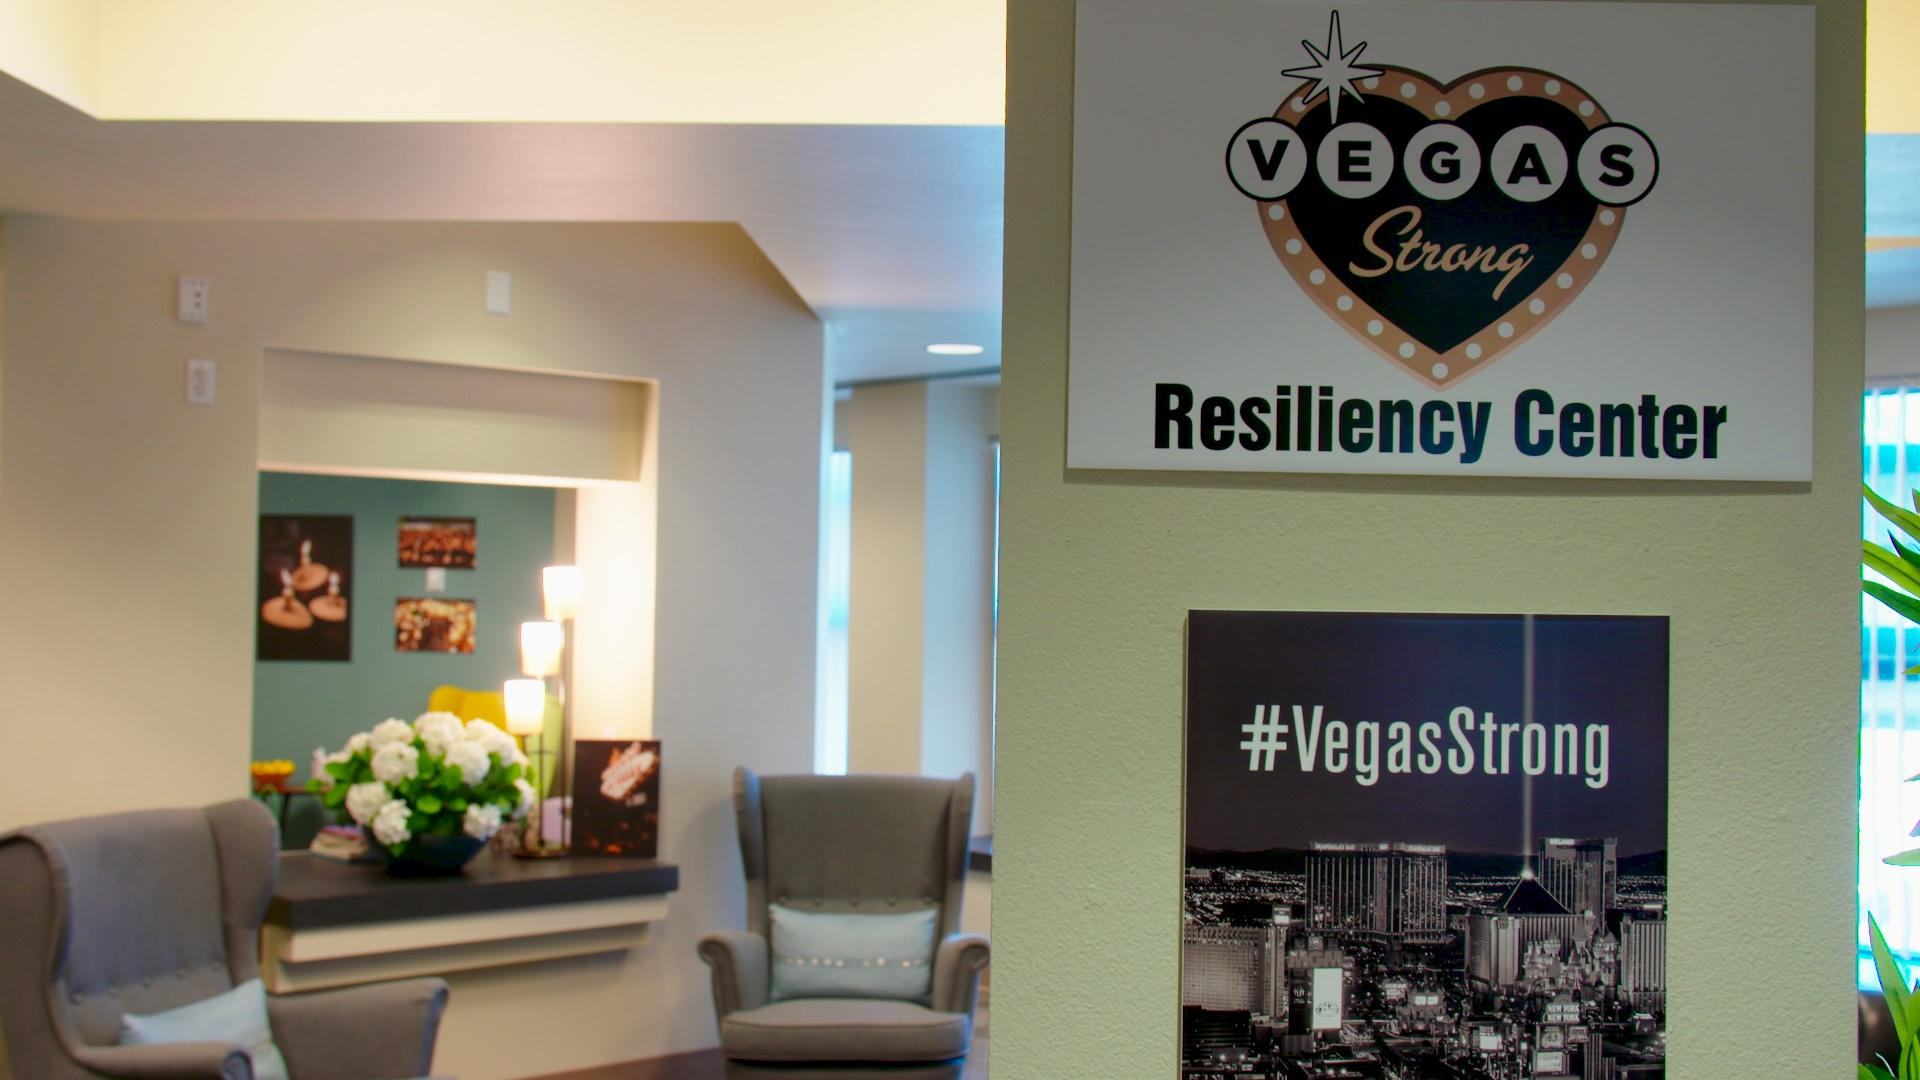 Sunrise Hospital and the Vegas Strong Resiliency